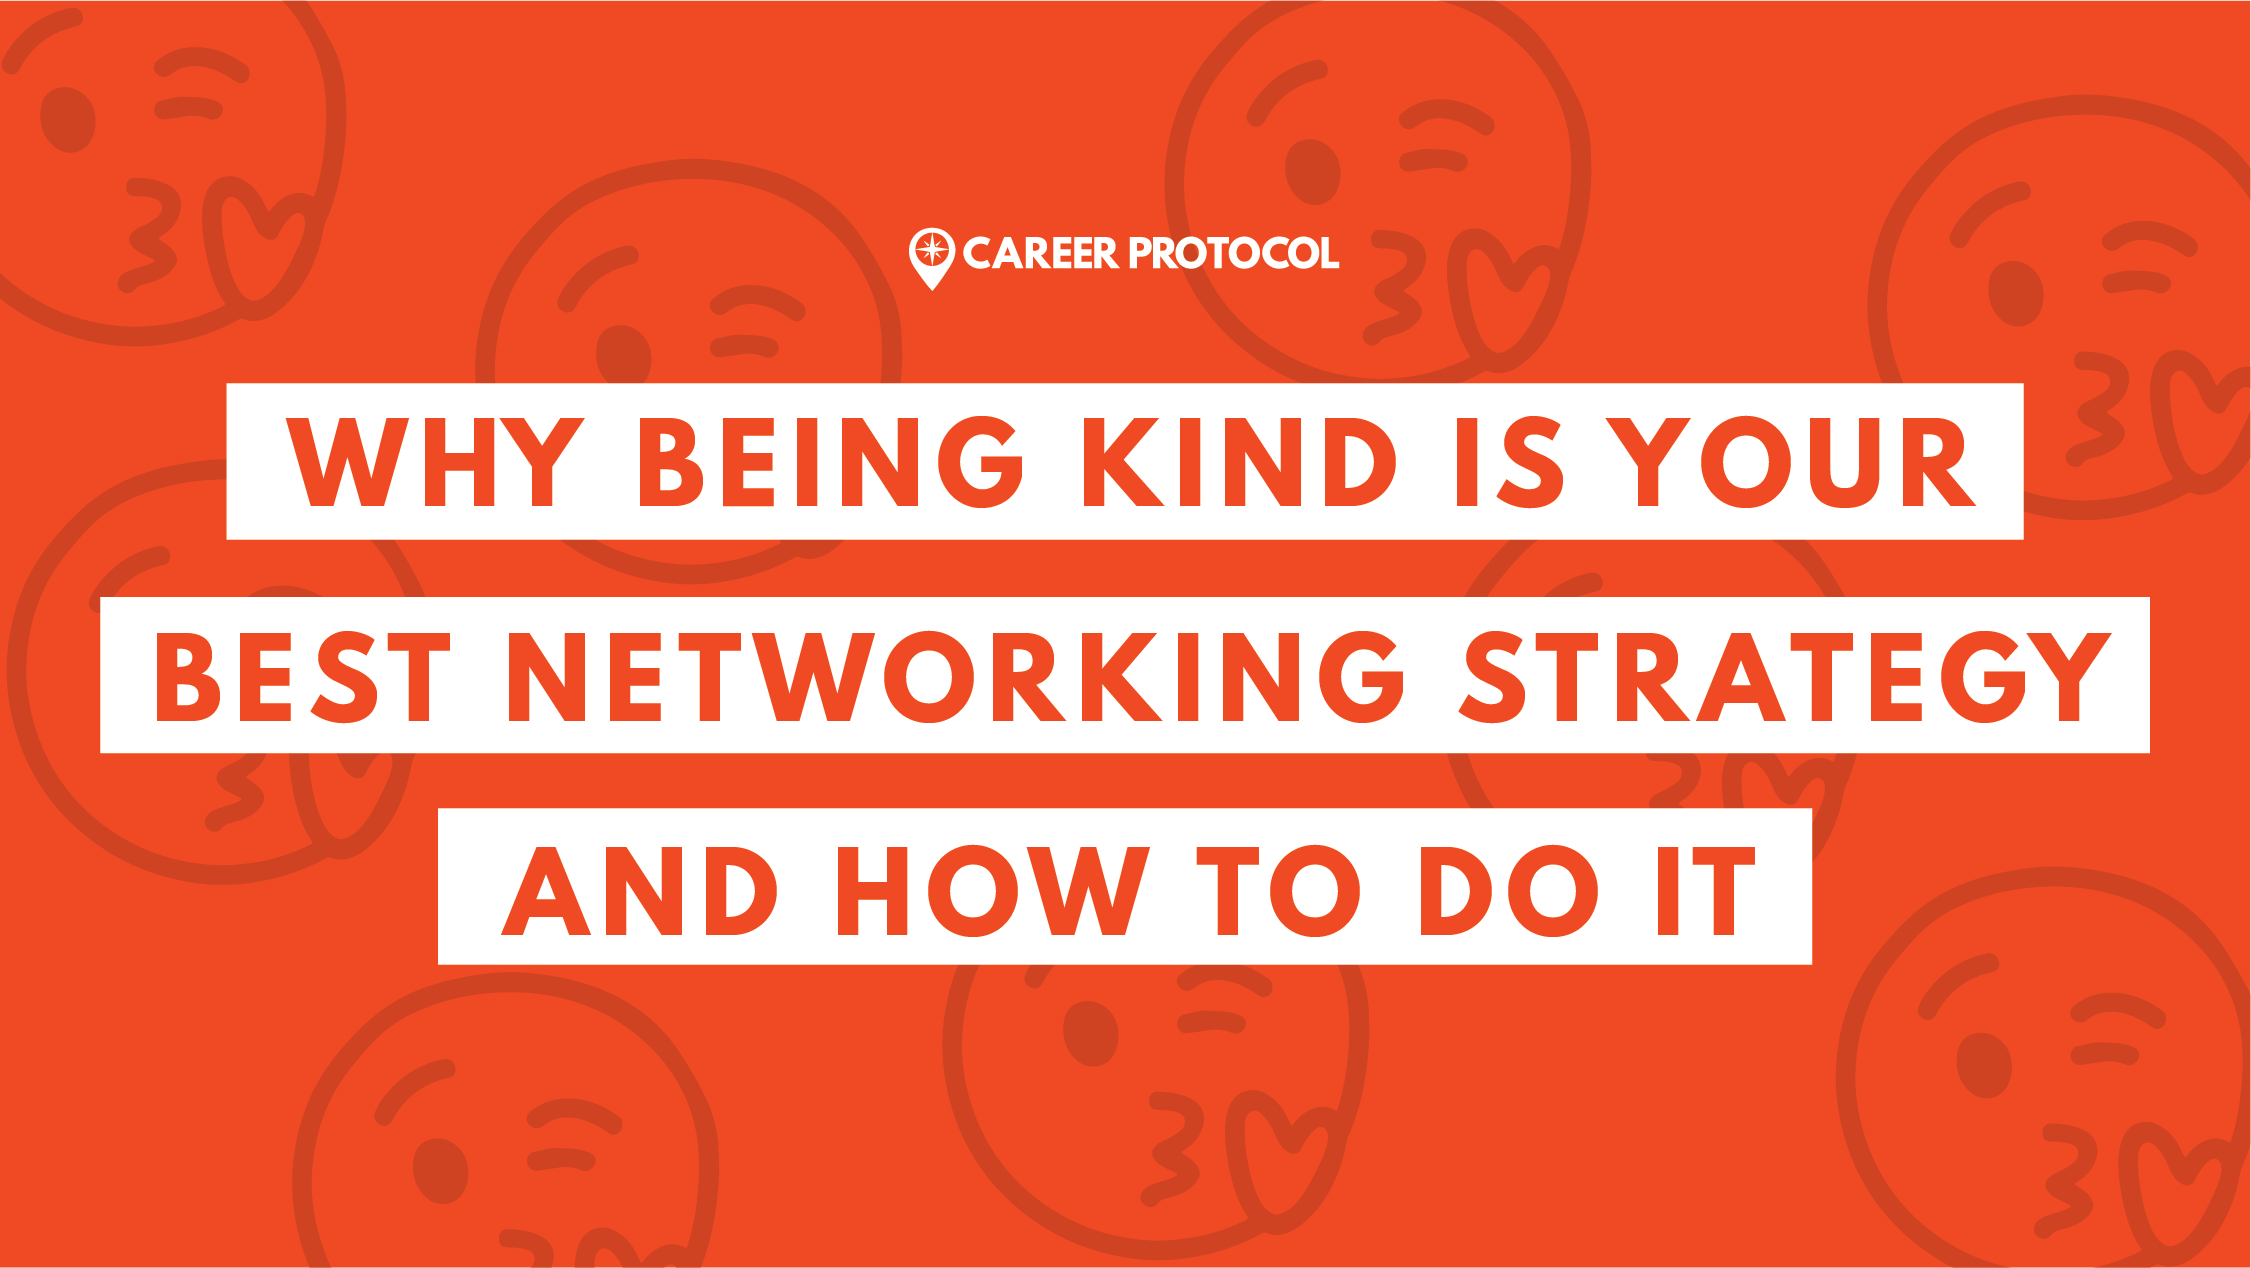 Why Being Kind Is Your Best Networking Strategy and How to Do it